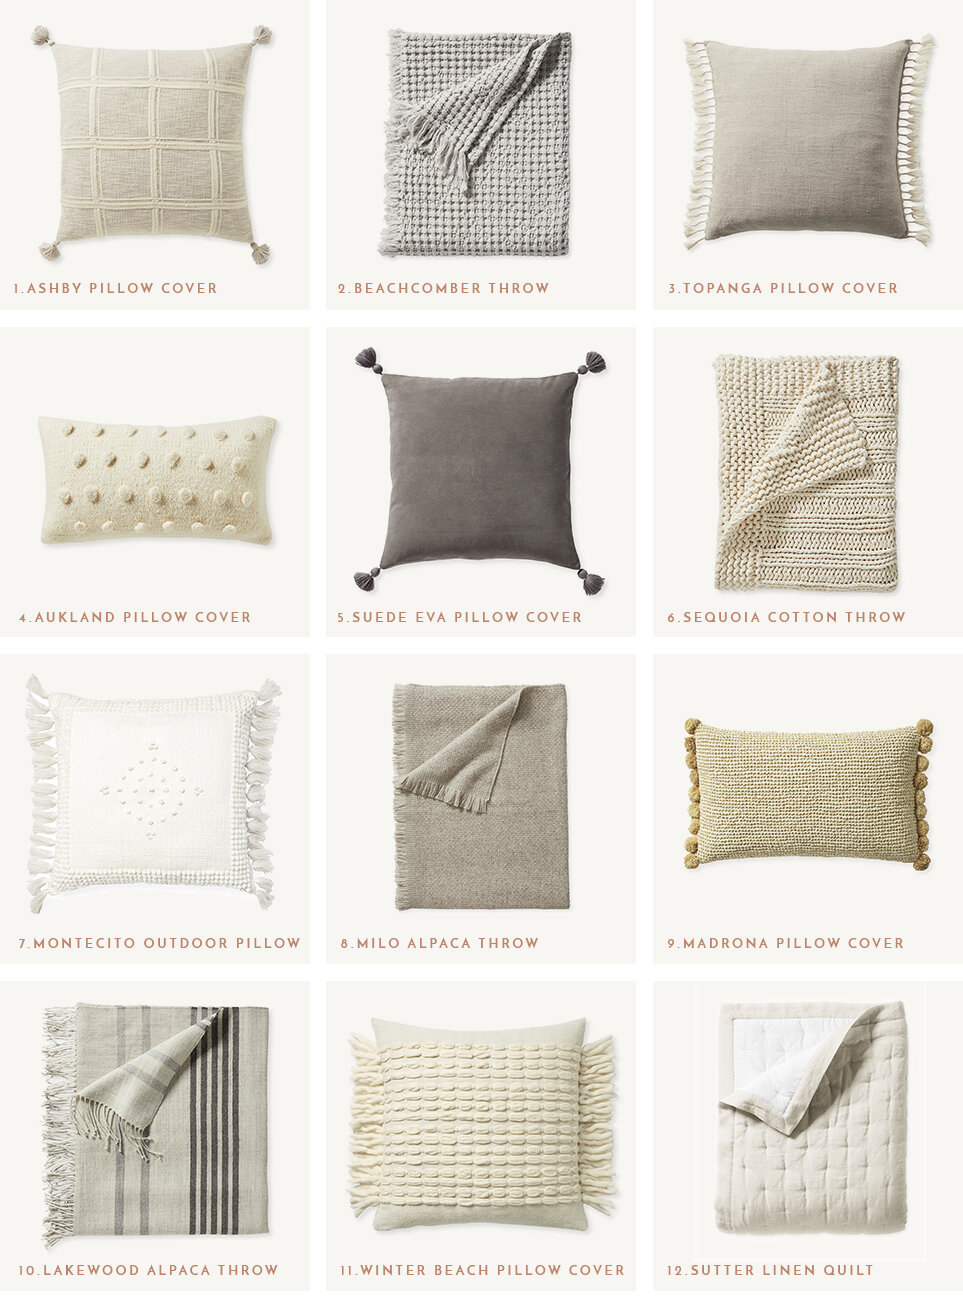 Serena & Lily neutral pillows and throws - Heather Bullard